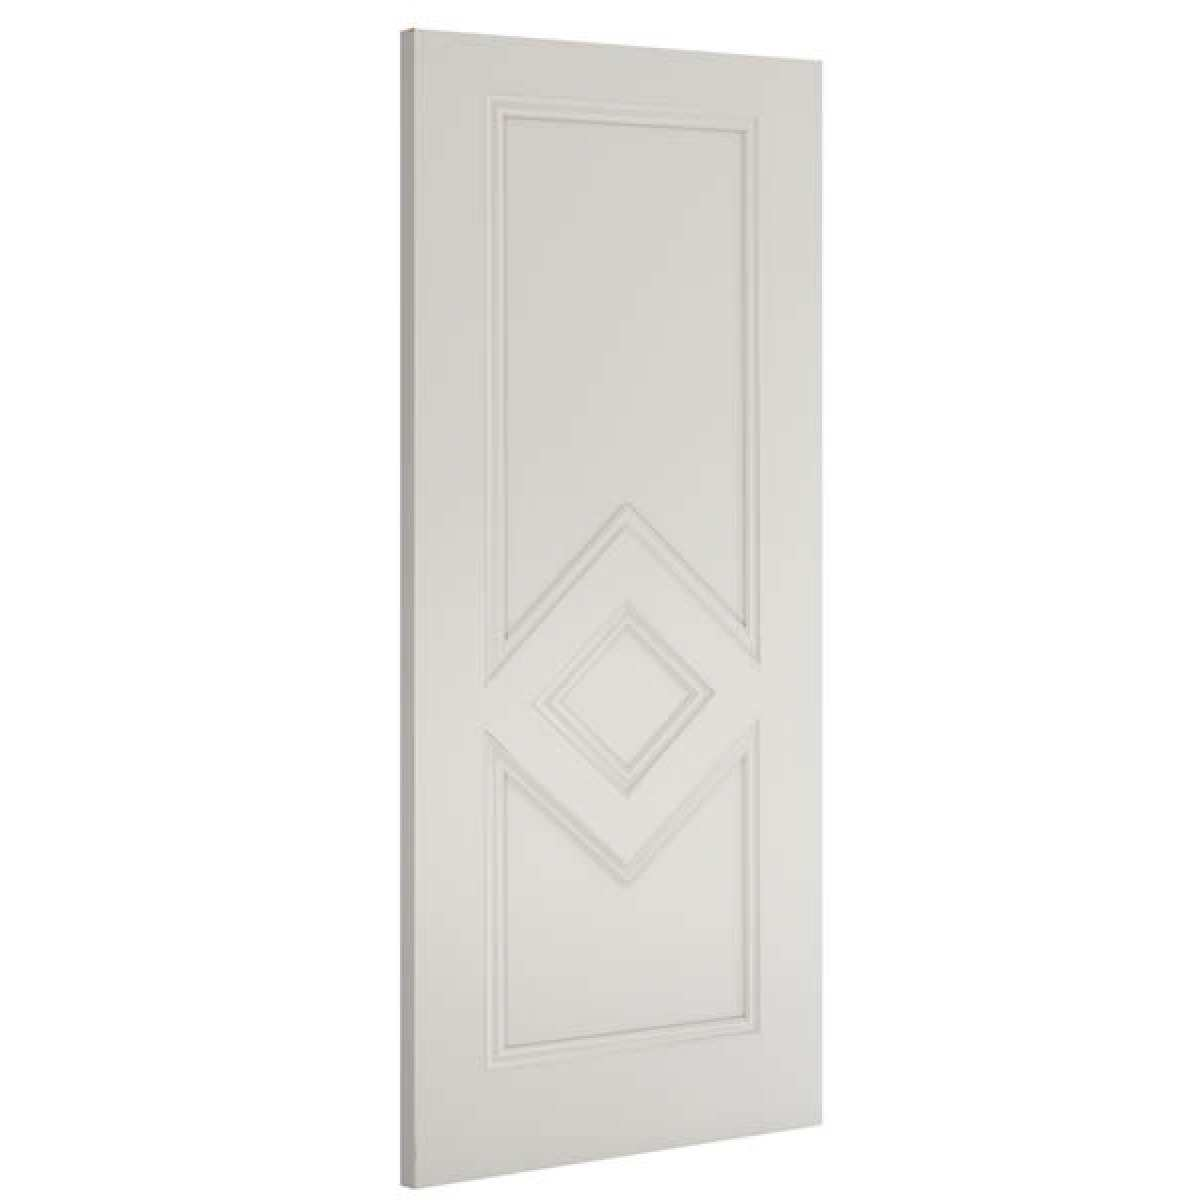 ascot white primed angled websters Image by Websters Timber